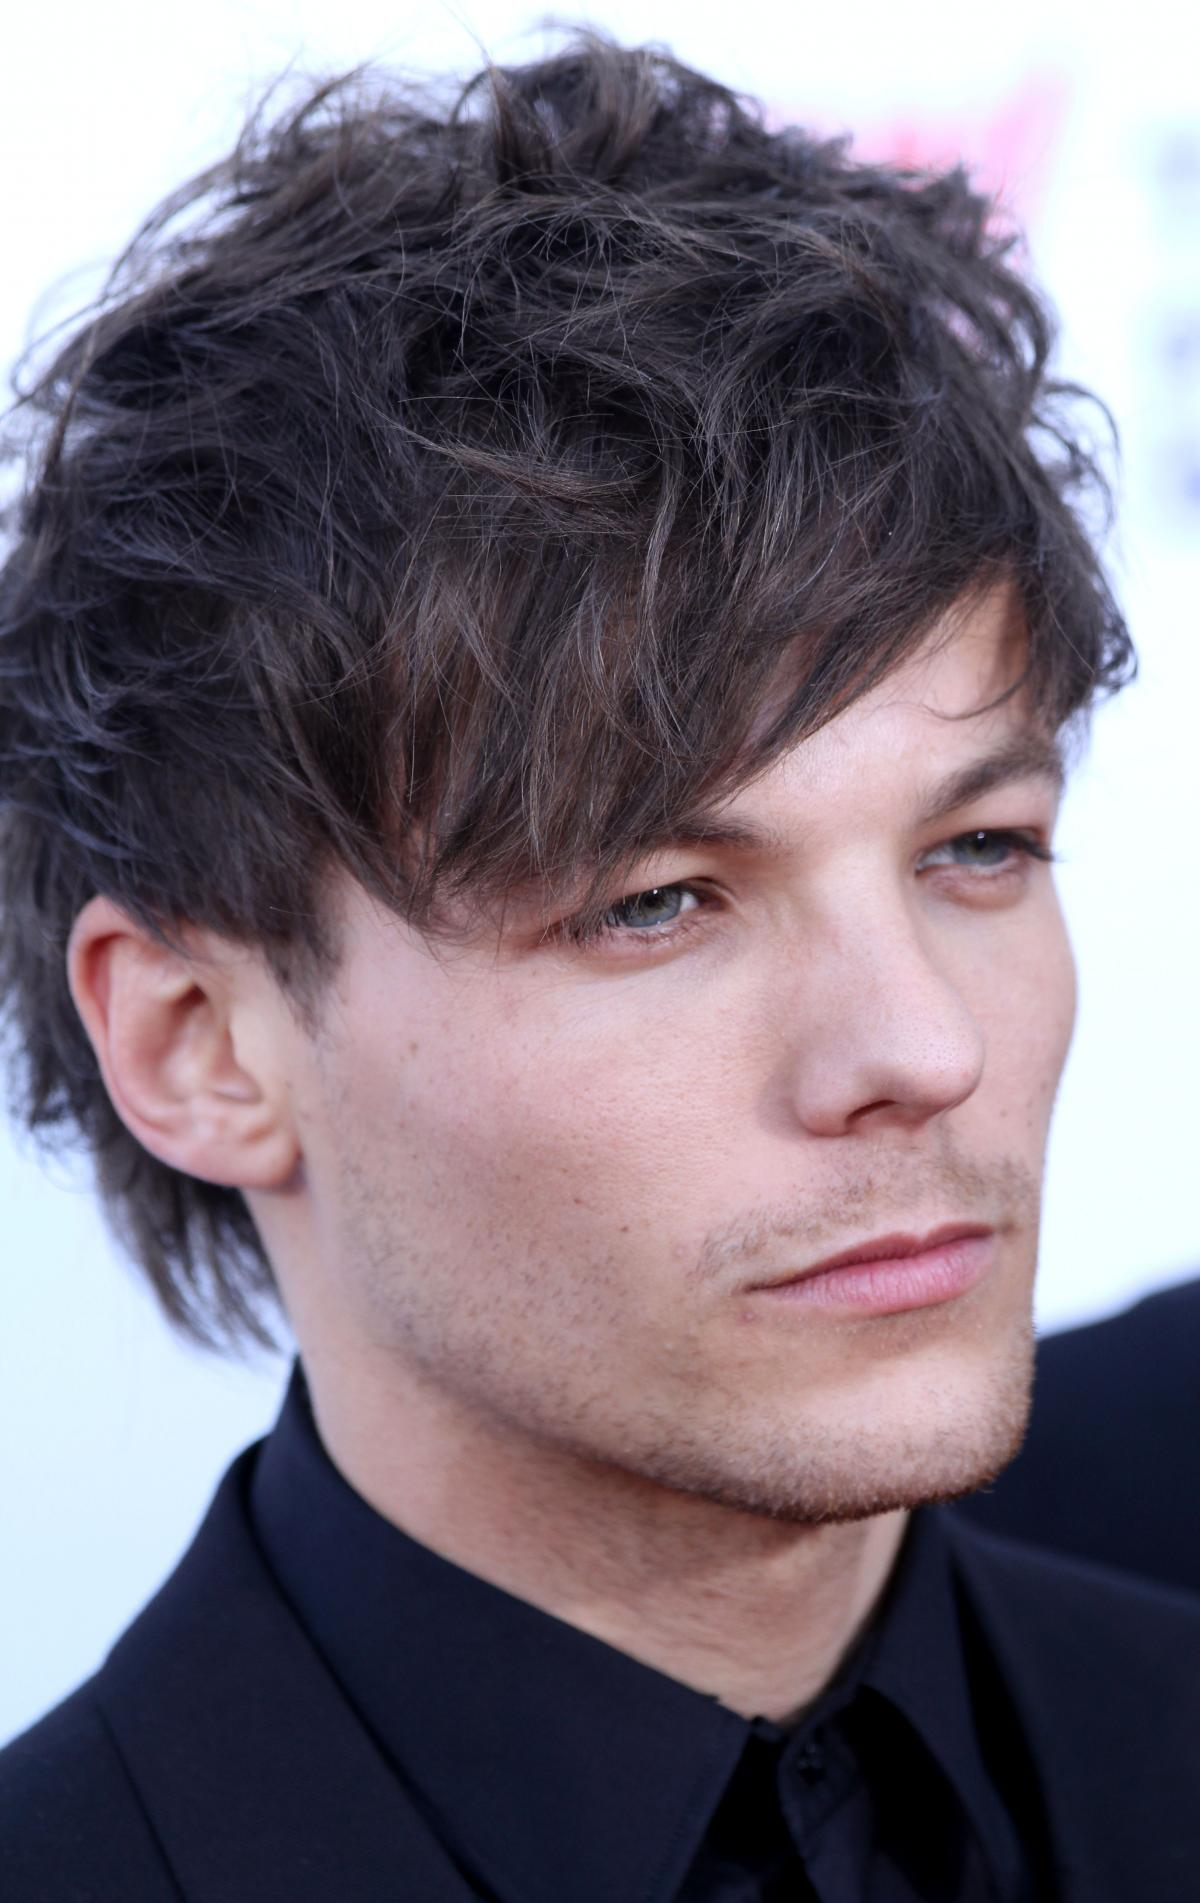 Louis Tomlinson - Celebrity biography, zodiac sign and